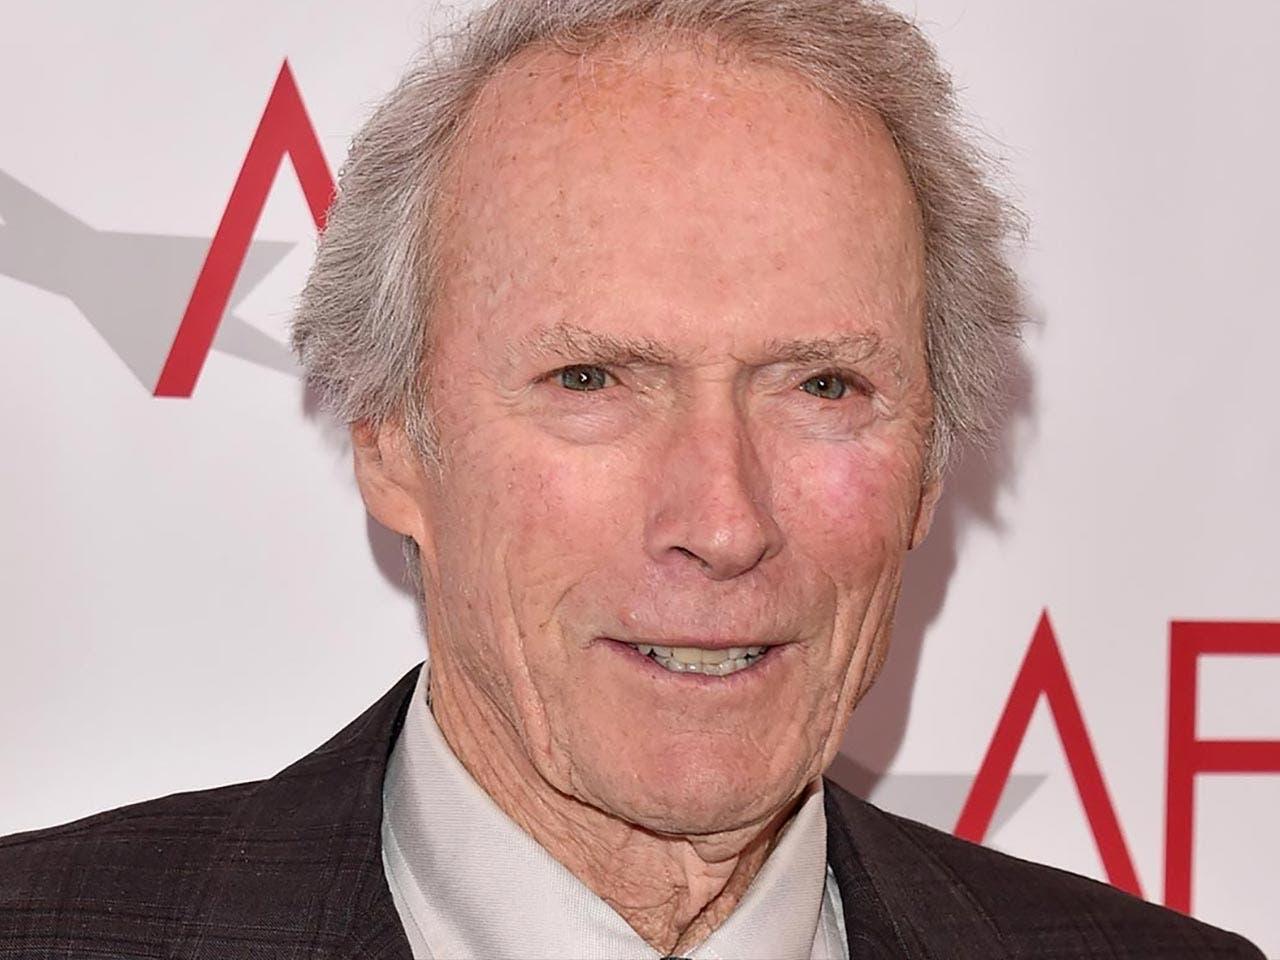 Clint Eastwood lists house for sale | Alberto E. Rodriguez /Getty Images